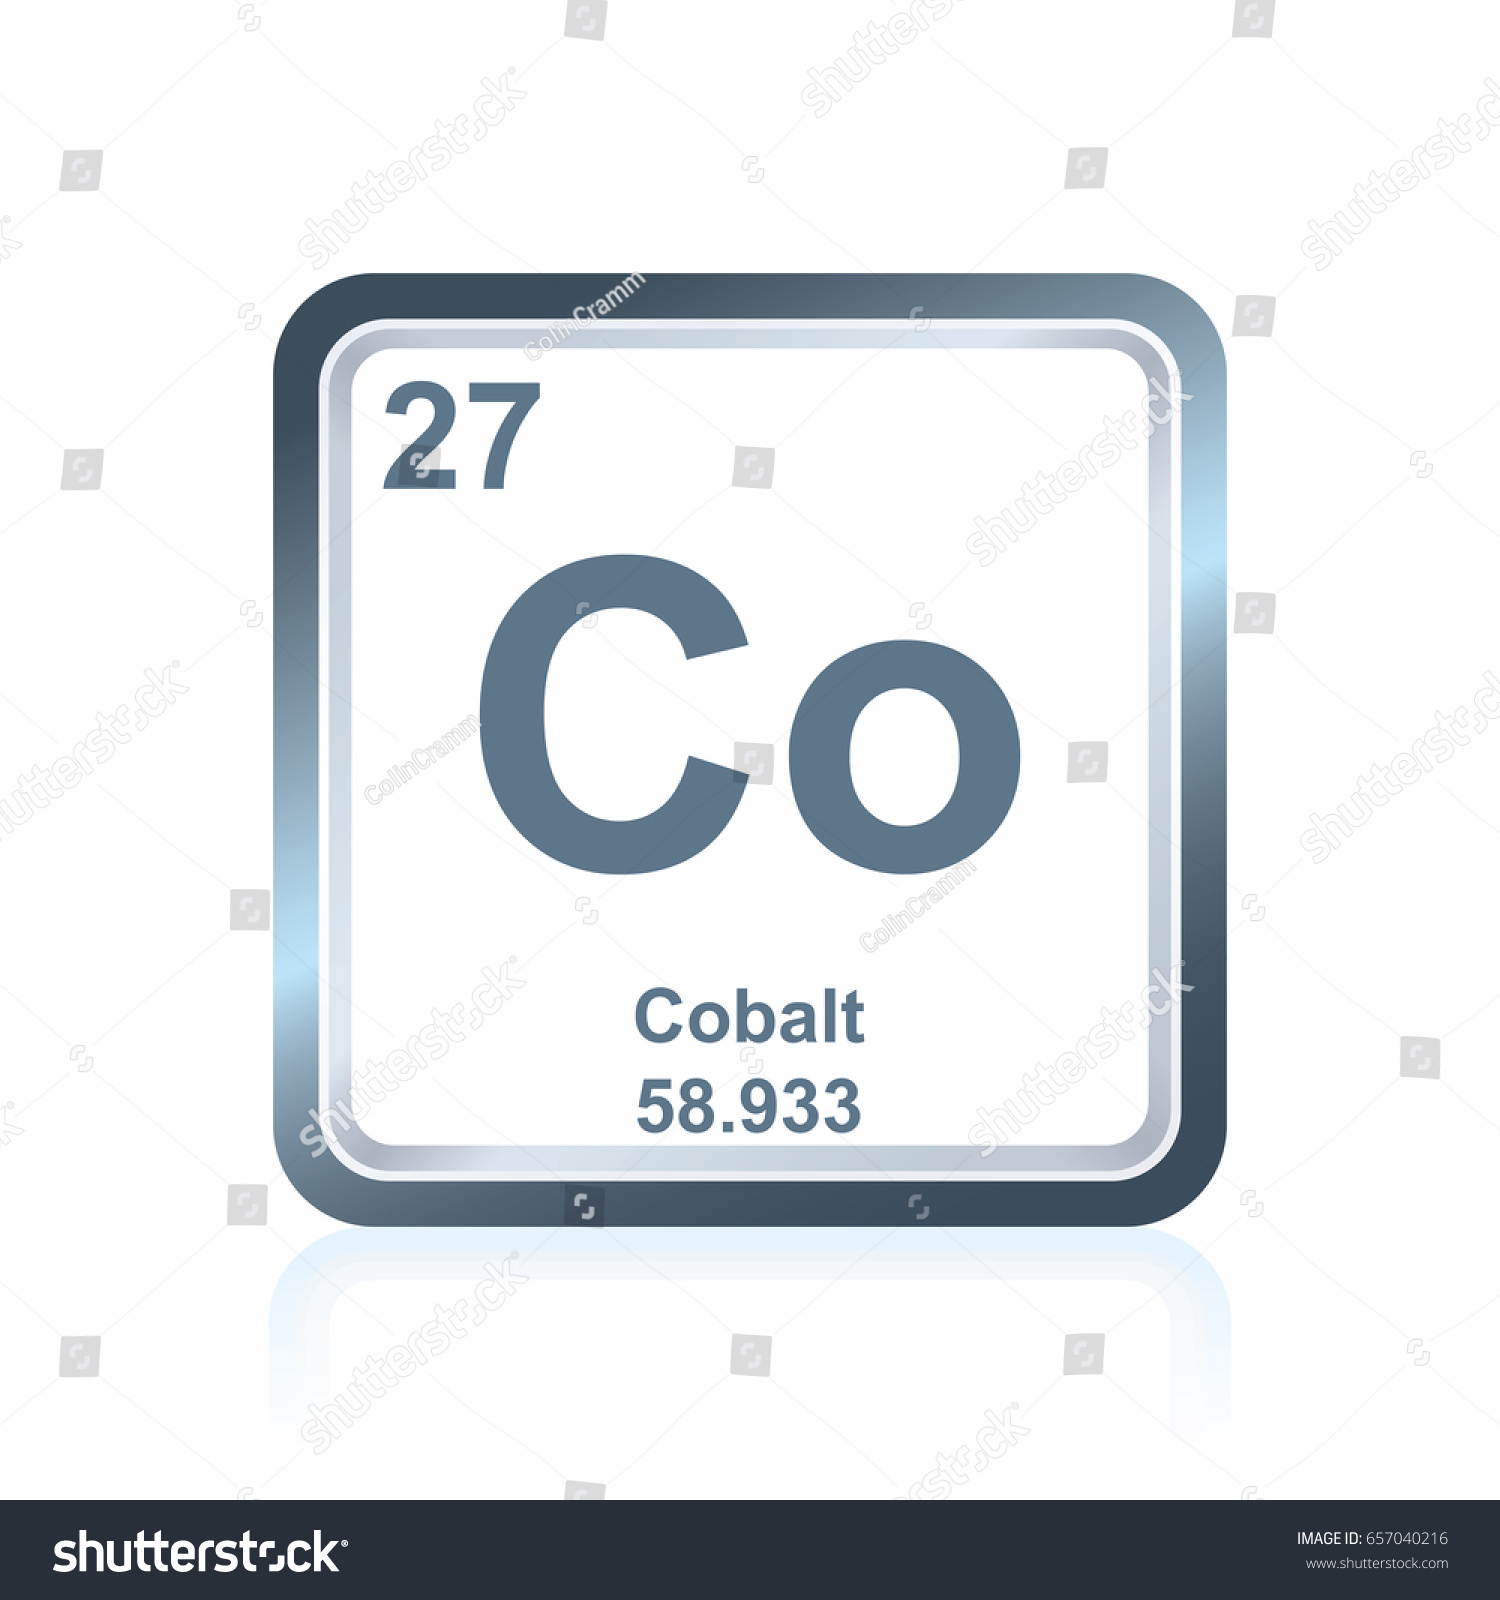 Cobalt on periodic table image collections periodic table images cobalt on periodic table choice image periodic table images cobalt on periodic table image collections periodic gamestrikefo Image collections